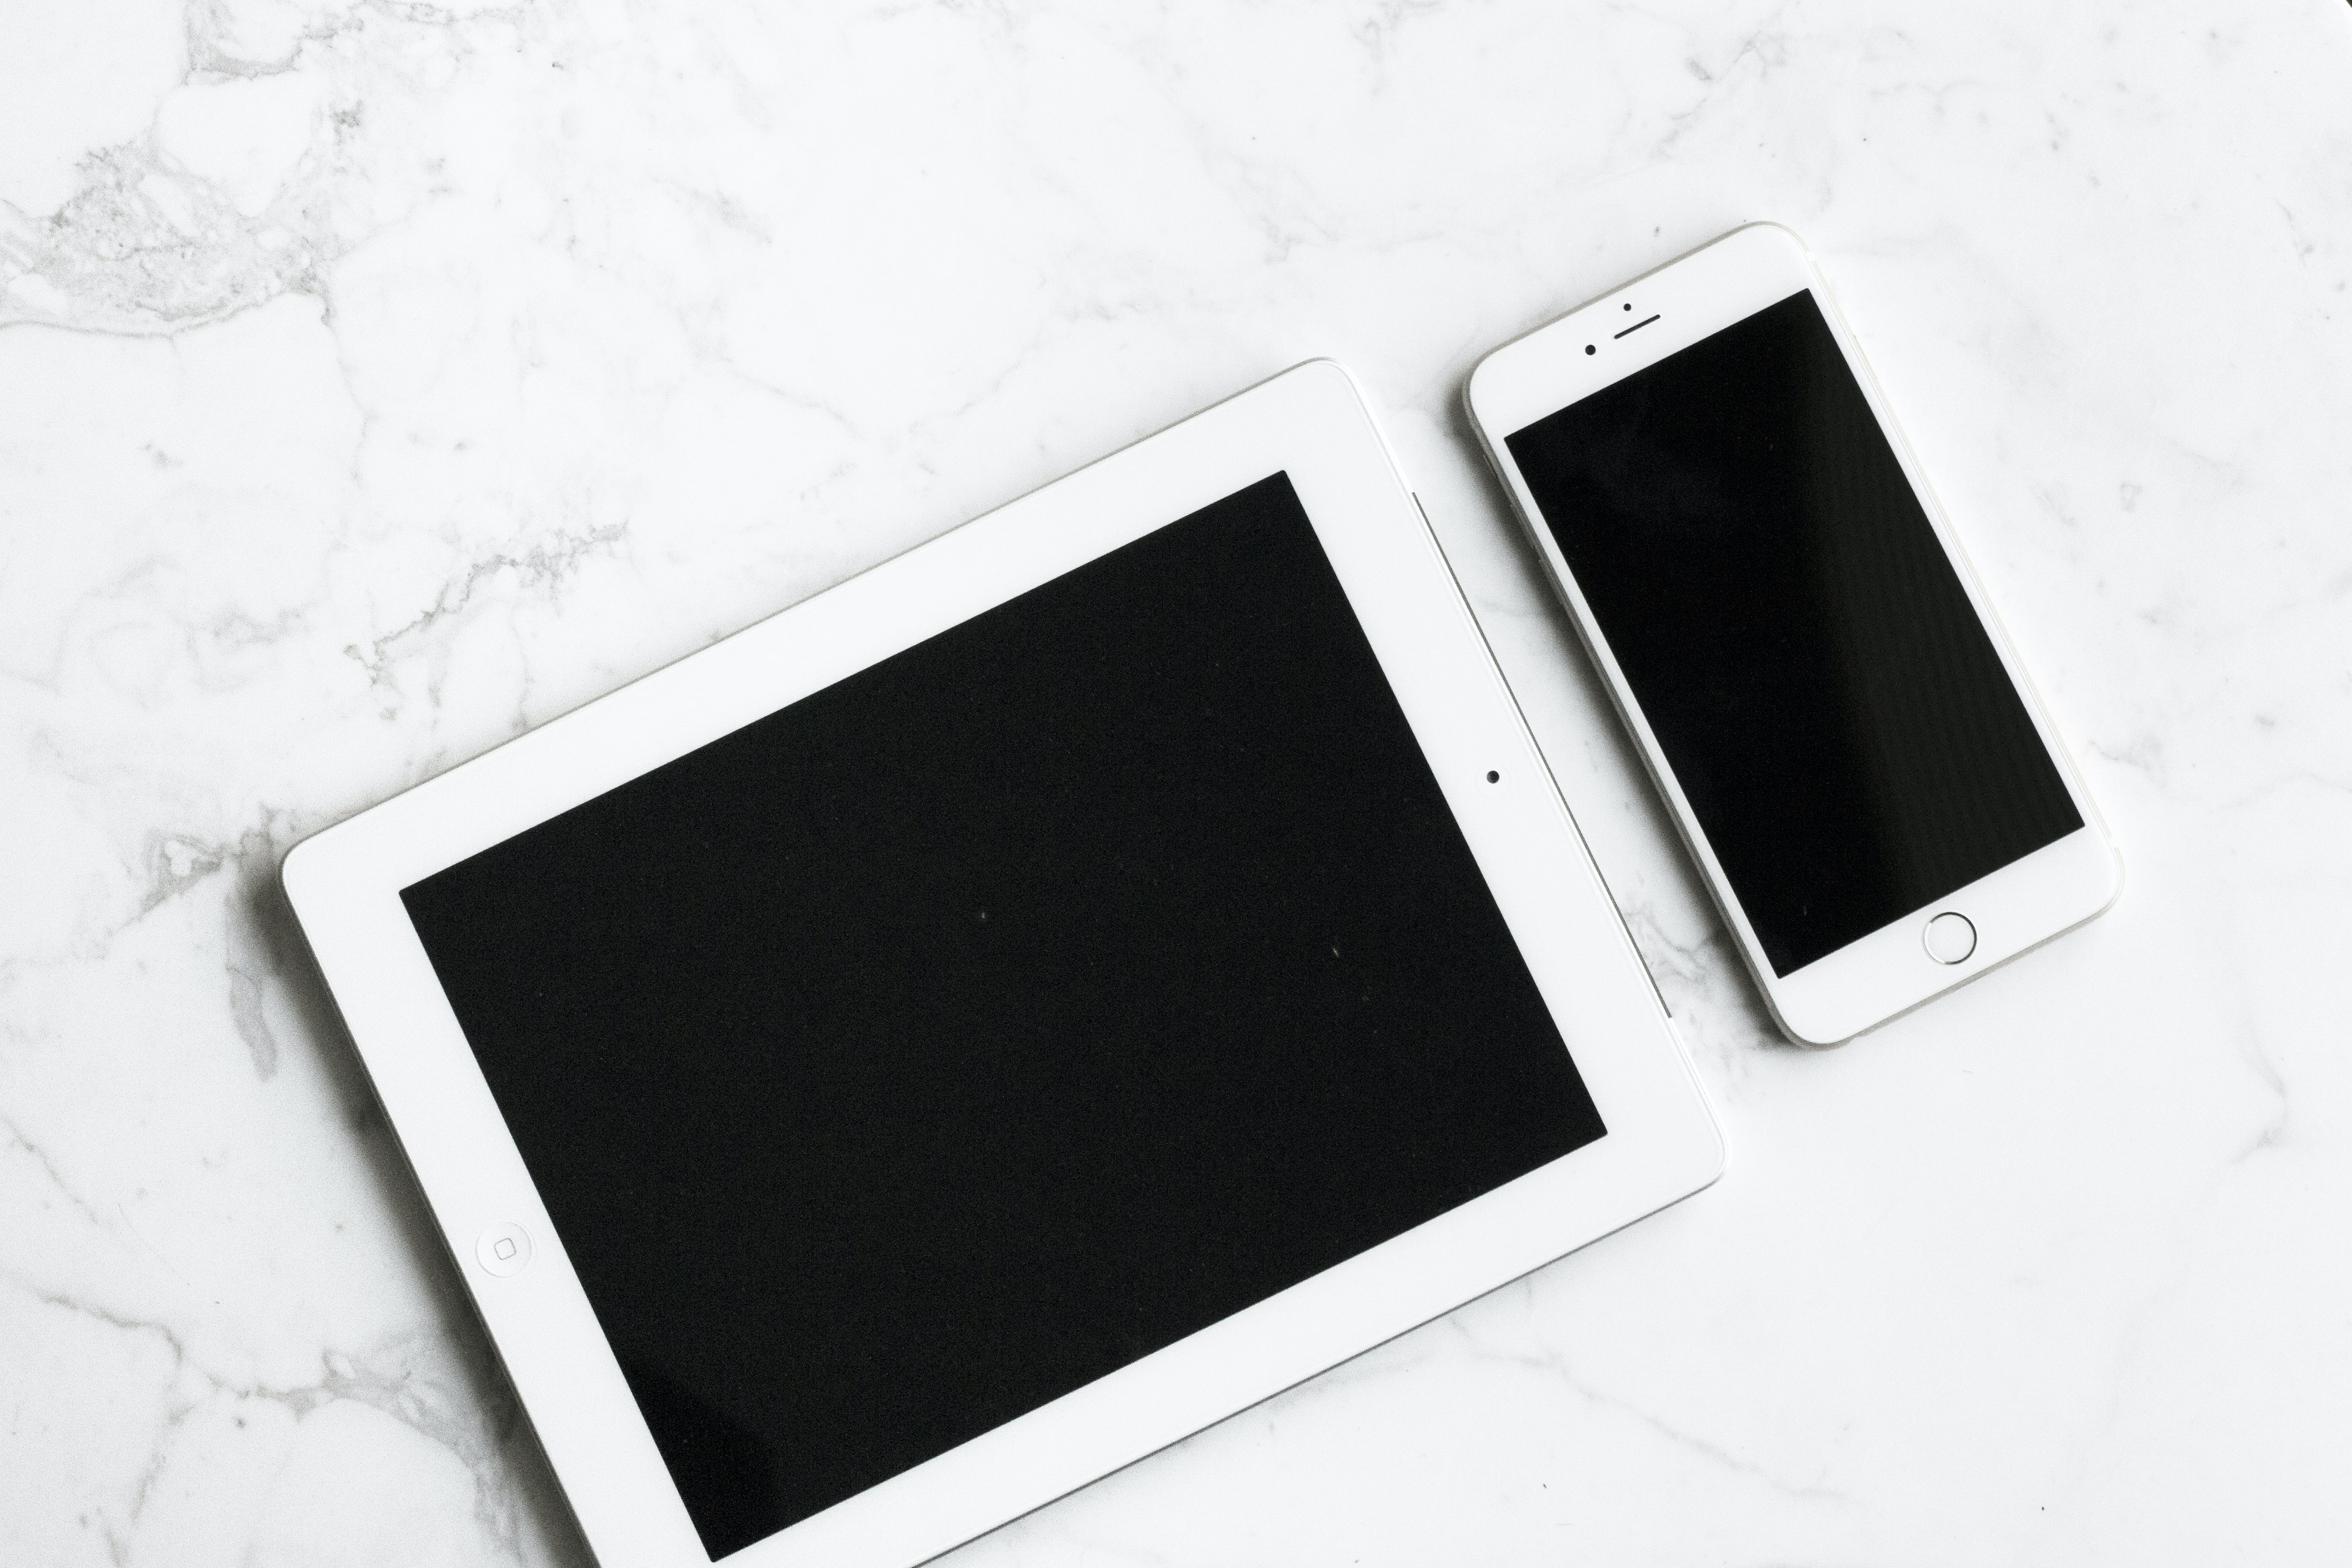 An overhead shot of an iPad next to an iPhone on white marble surface